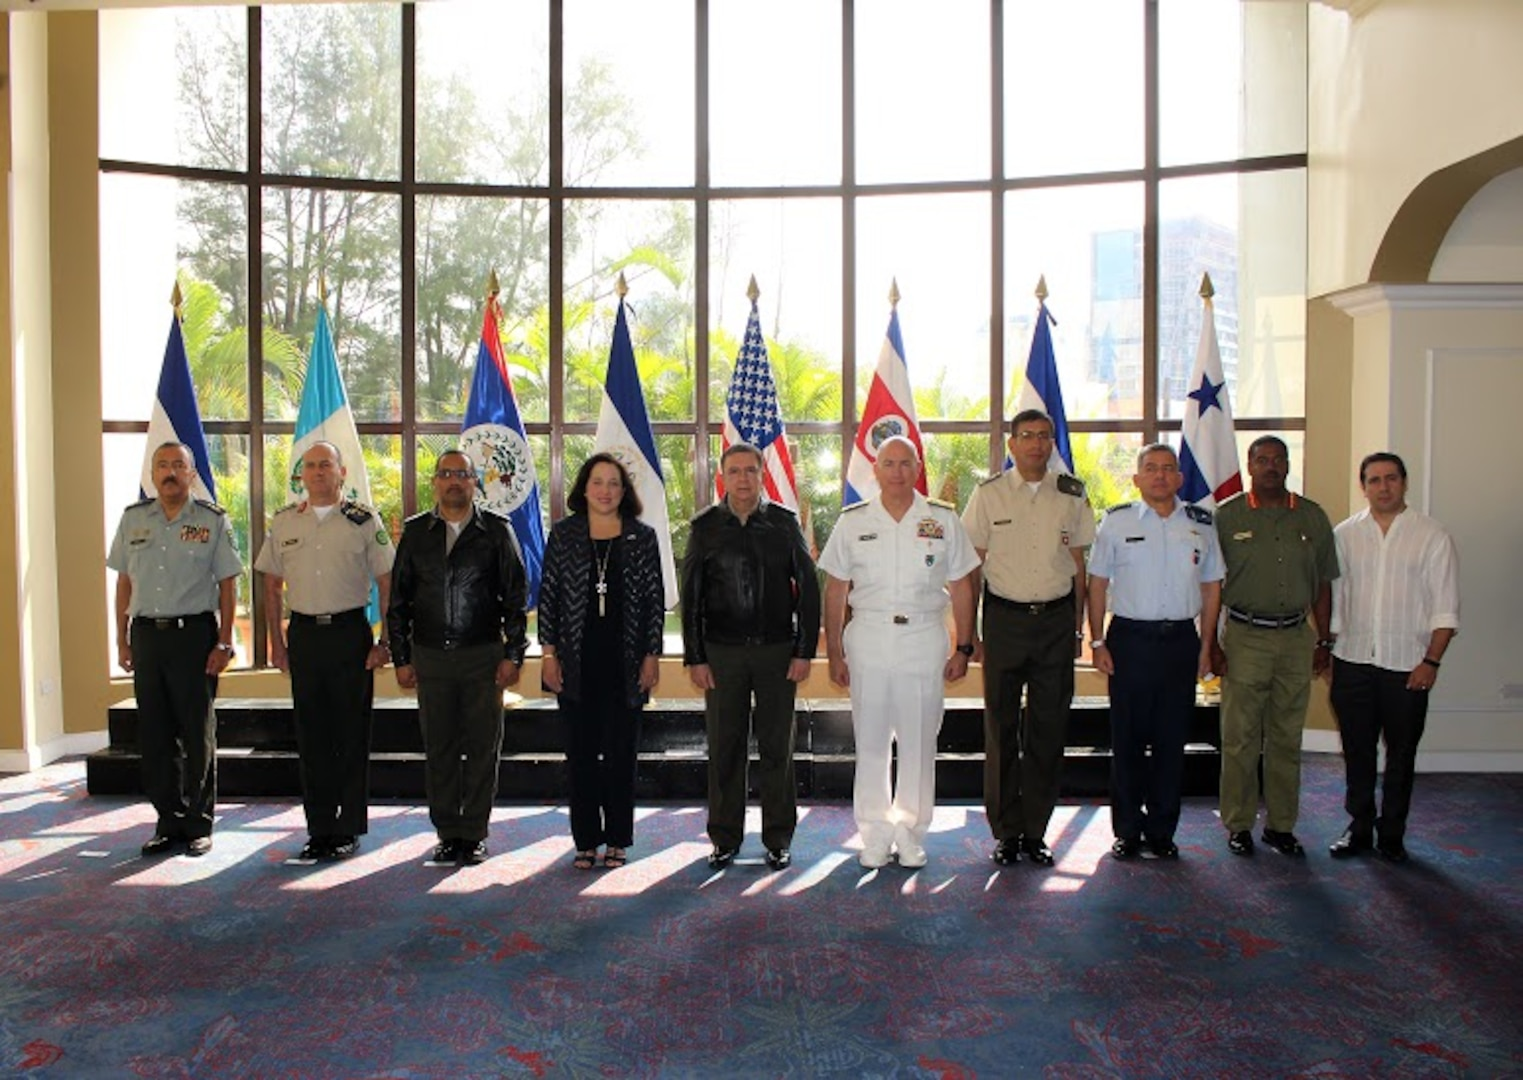 Group photo of the 2018 Central American Security Conference  participants.